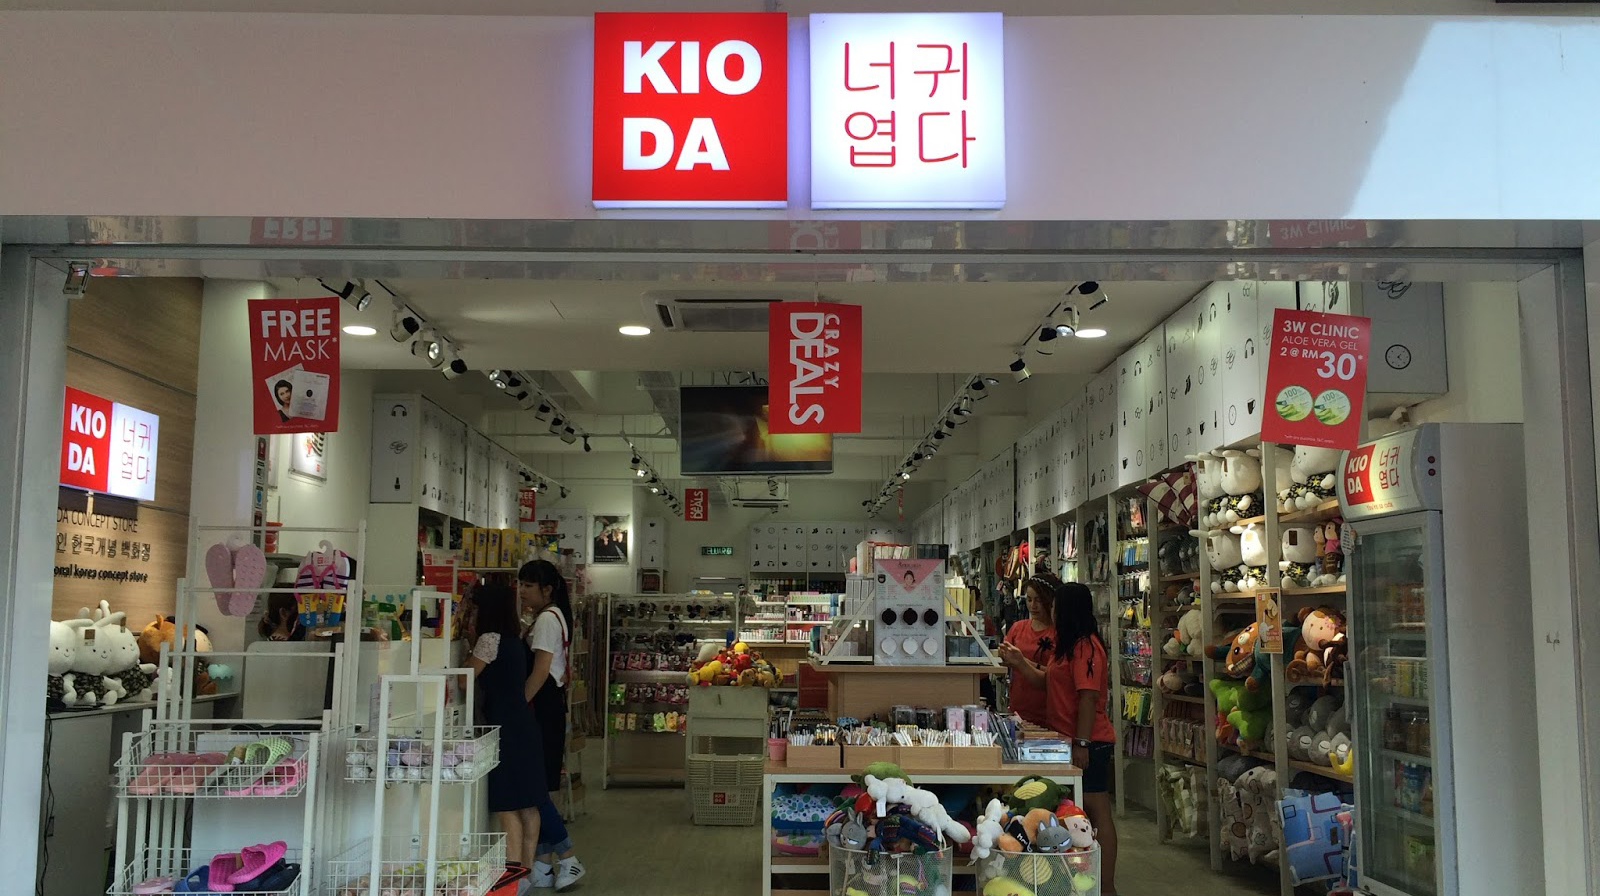 KIODA plans to open 300 stores in India by 2021